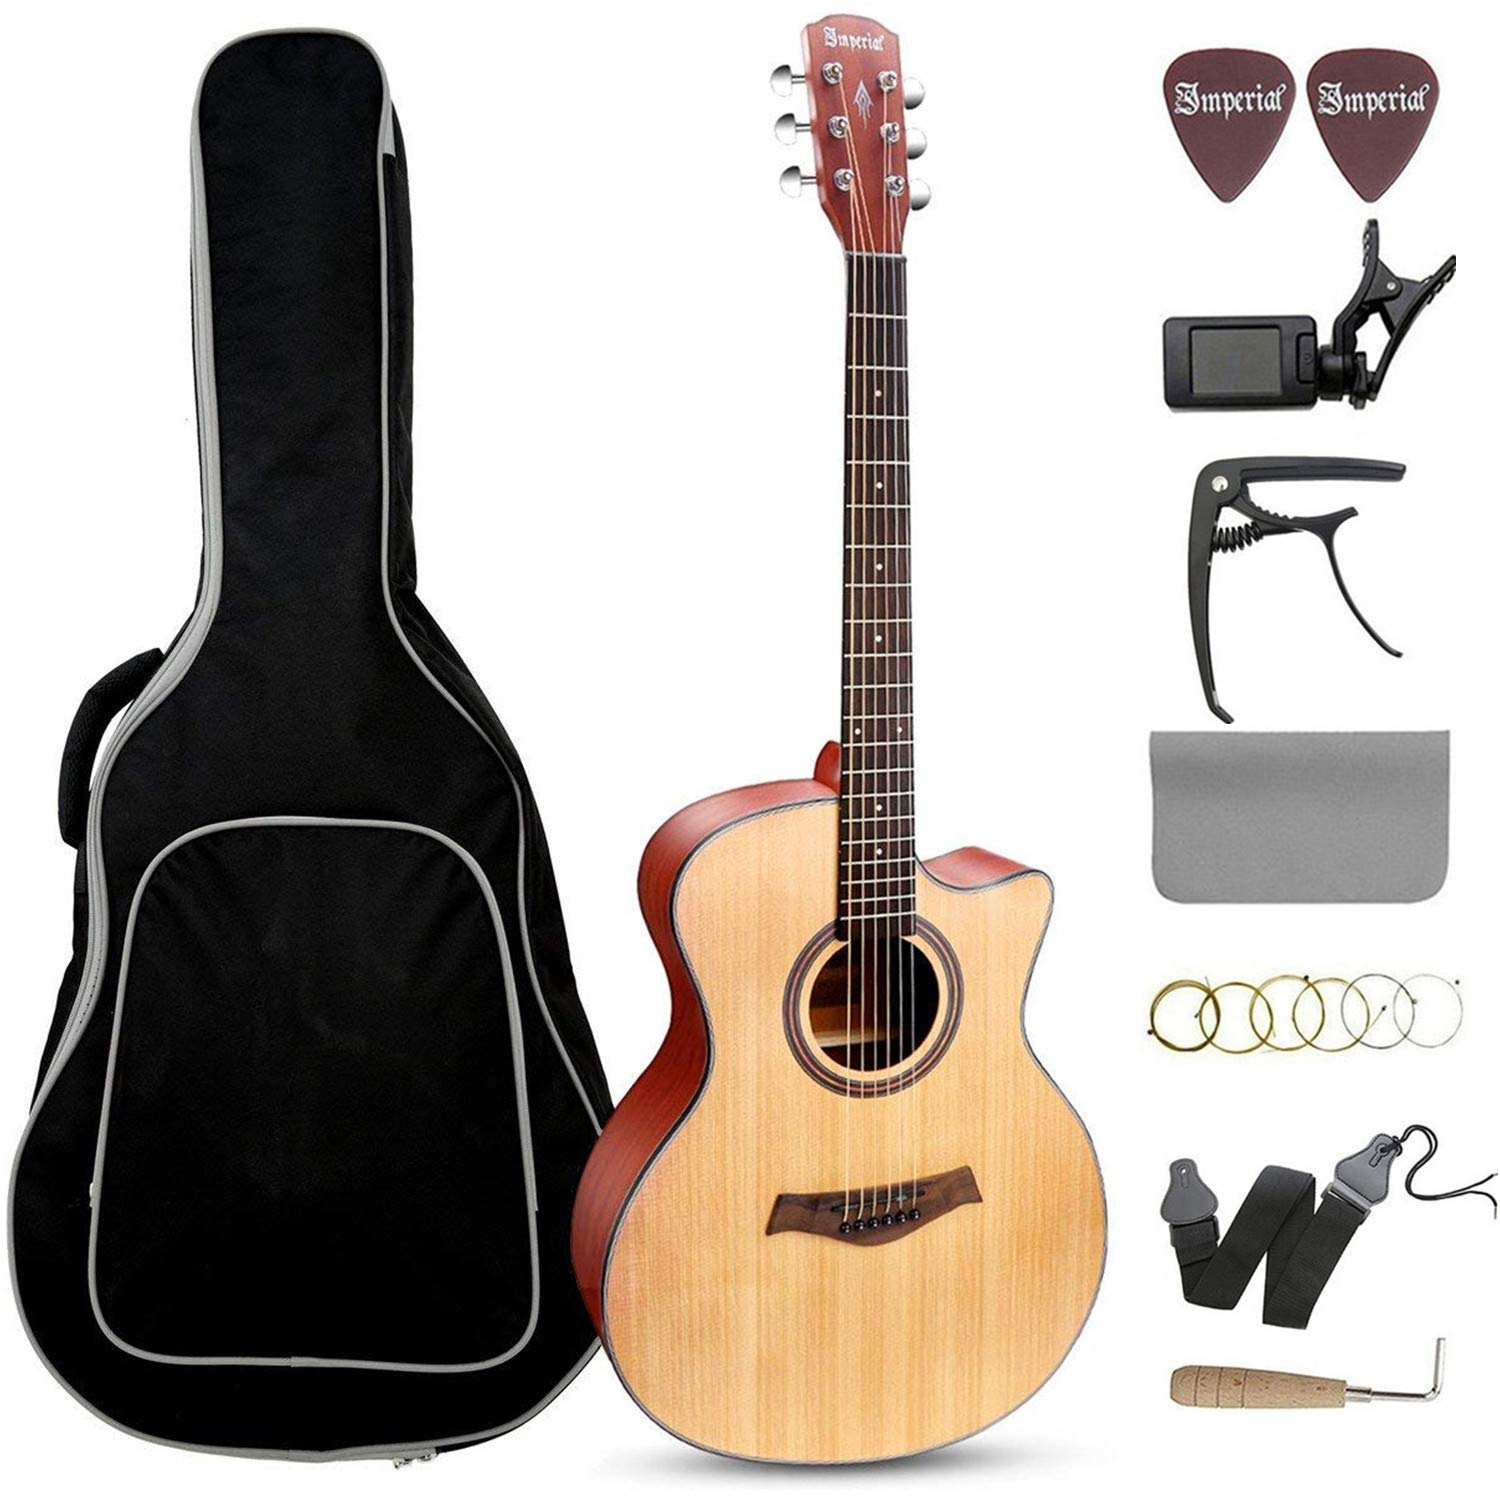 Beginner Acoustic Guitar 41'' Full Size GA Cutaway Spruce Wooden Guitars Kit - Starter Guitar Pack for Adults (Grand Auditorium) - Bundle with Gig Bag, Capo, Tuner, Strings, Strap, Picks